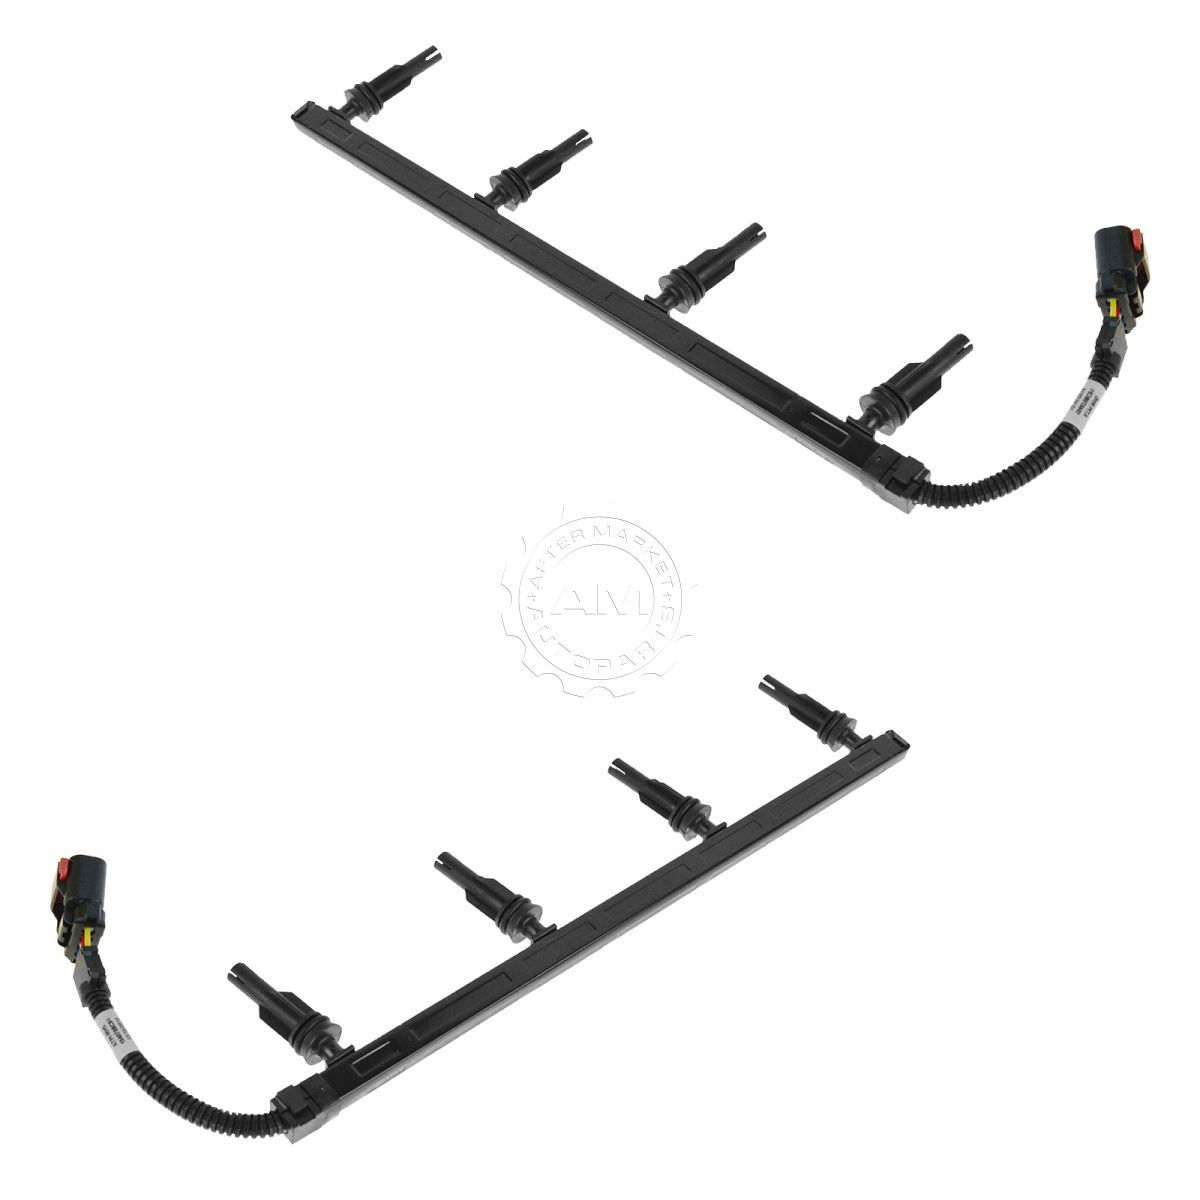 OEM Glow Plug Harness Pair Set for 2003 Ford Diesel Truck